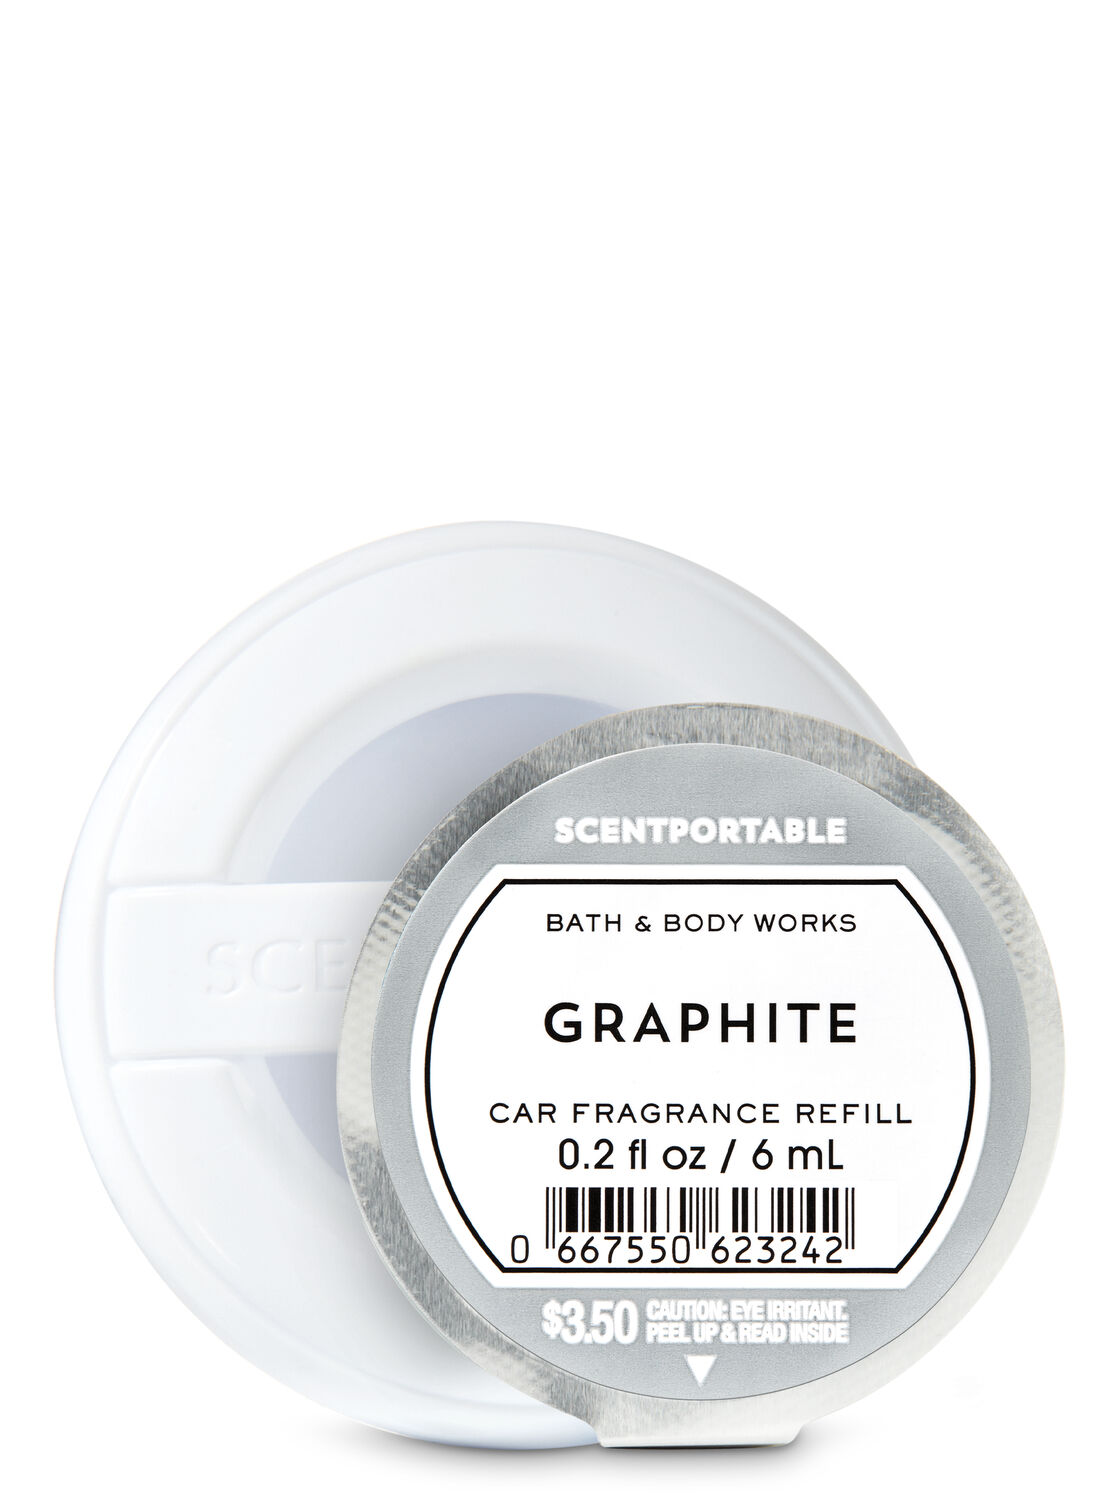 Graphite Car Fragrance Refill